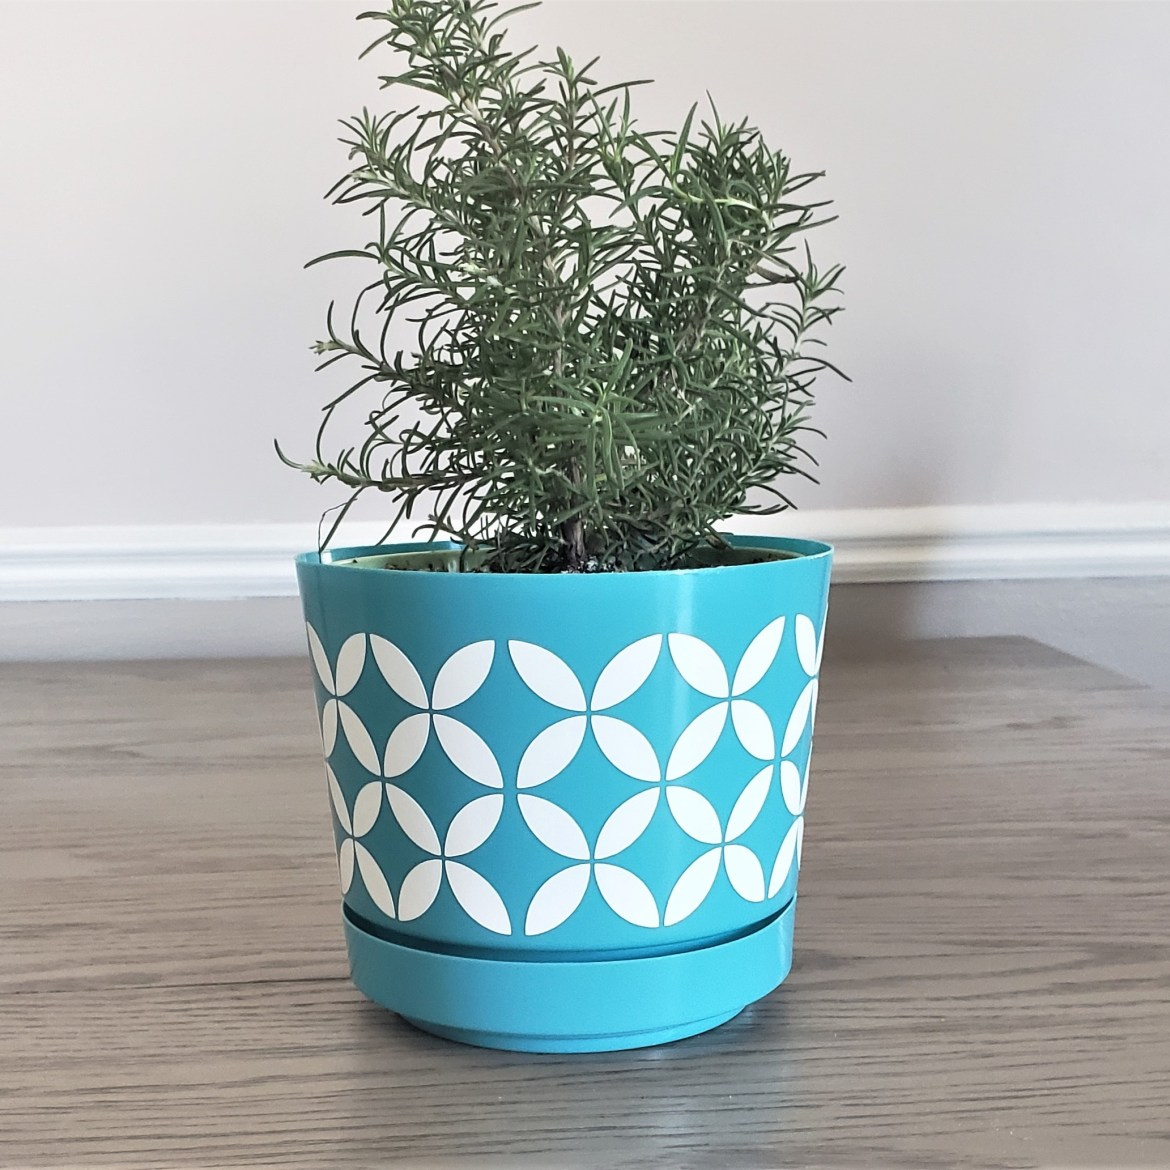 Fun Flower Pots Designed using the Silhouette Cameo